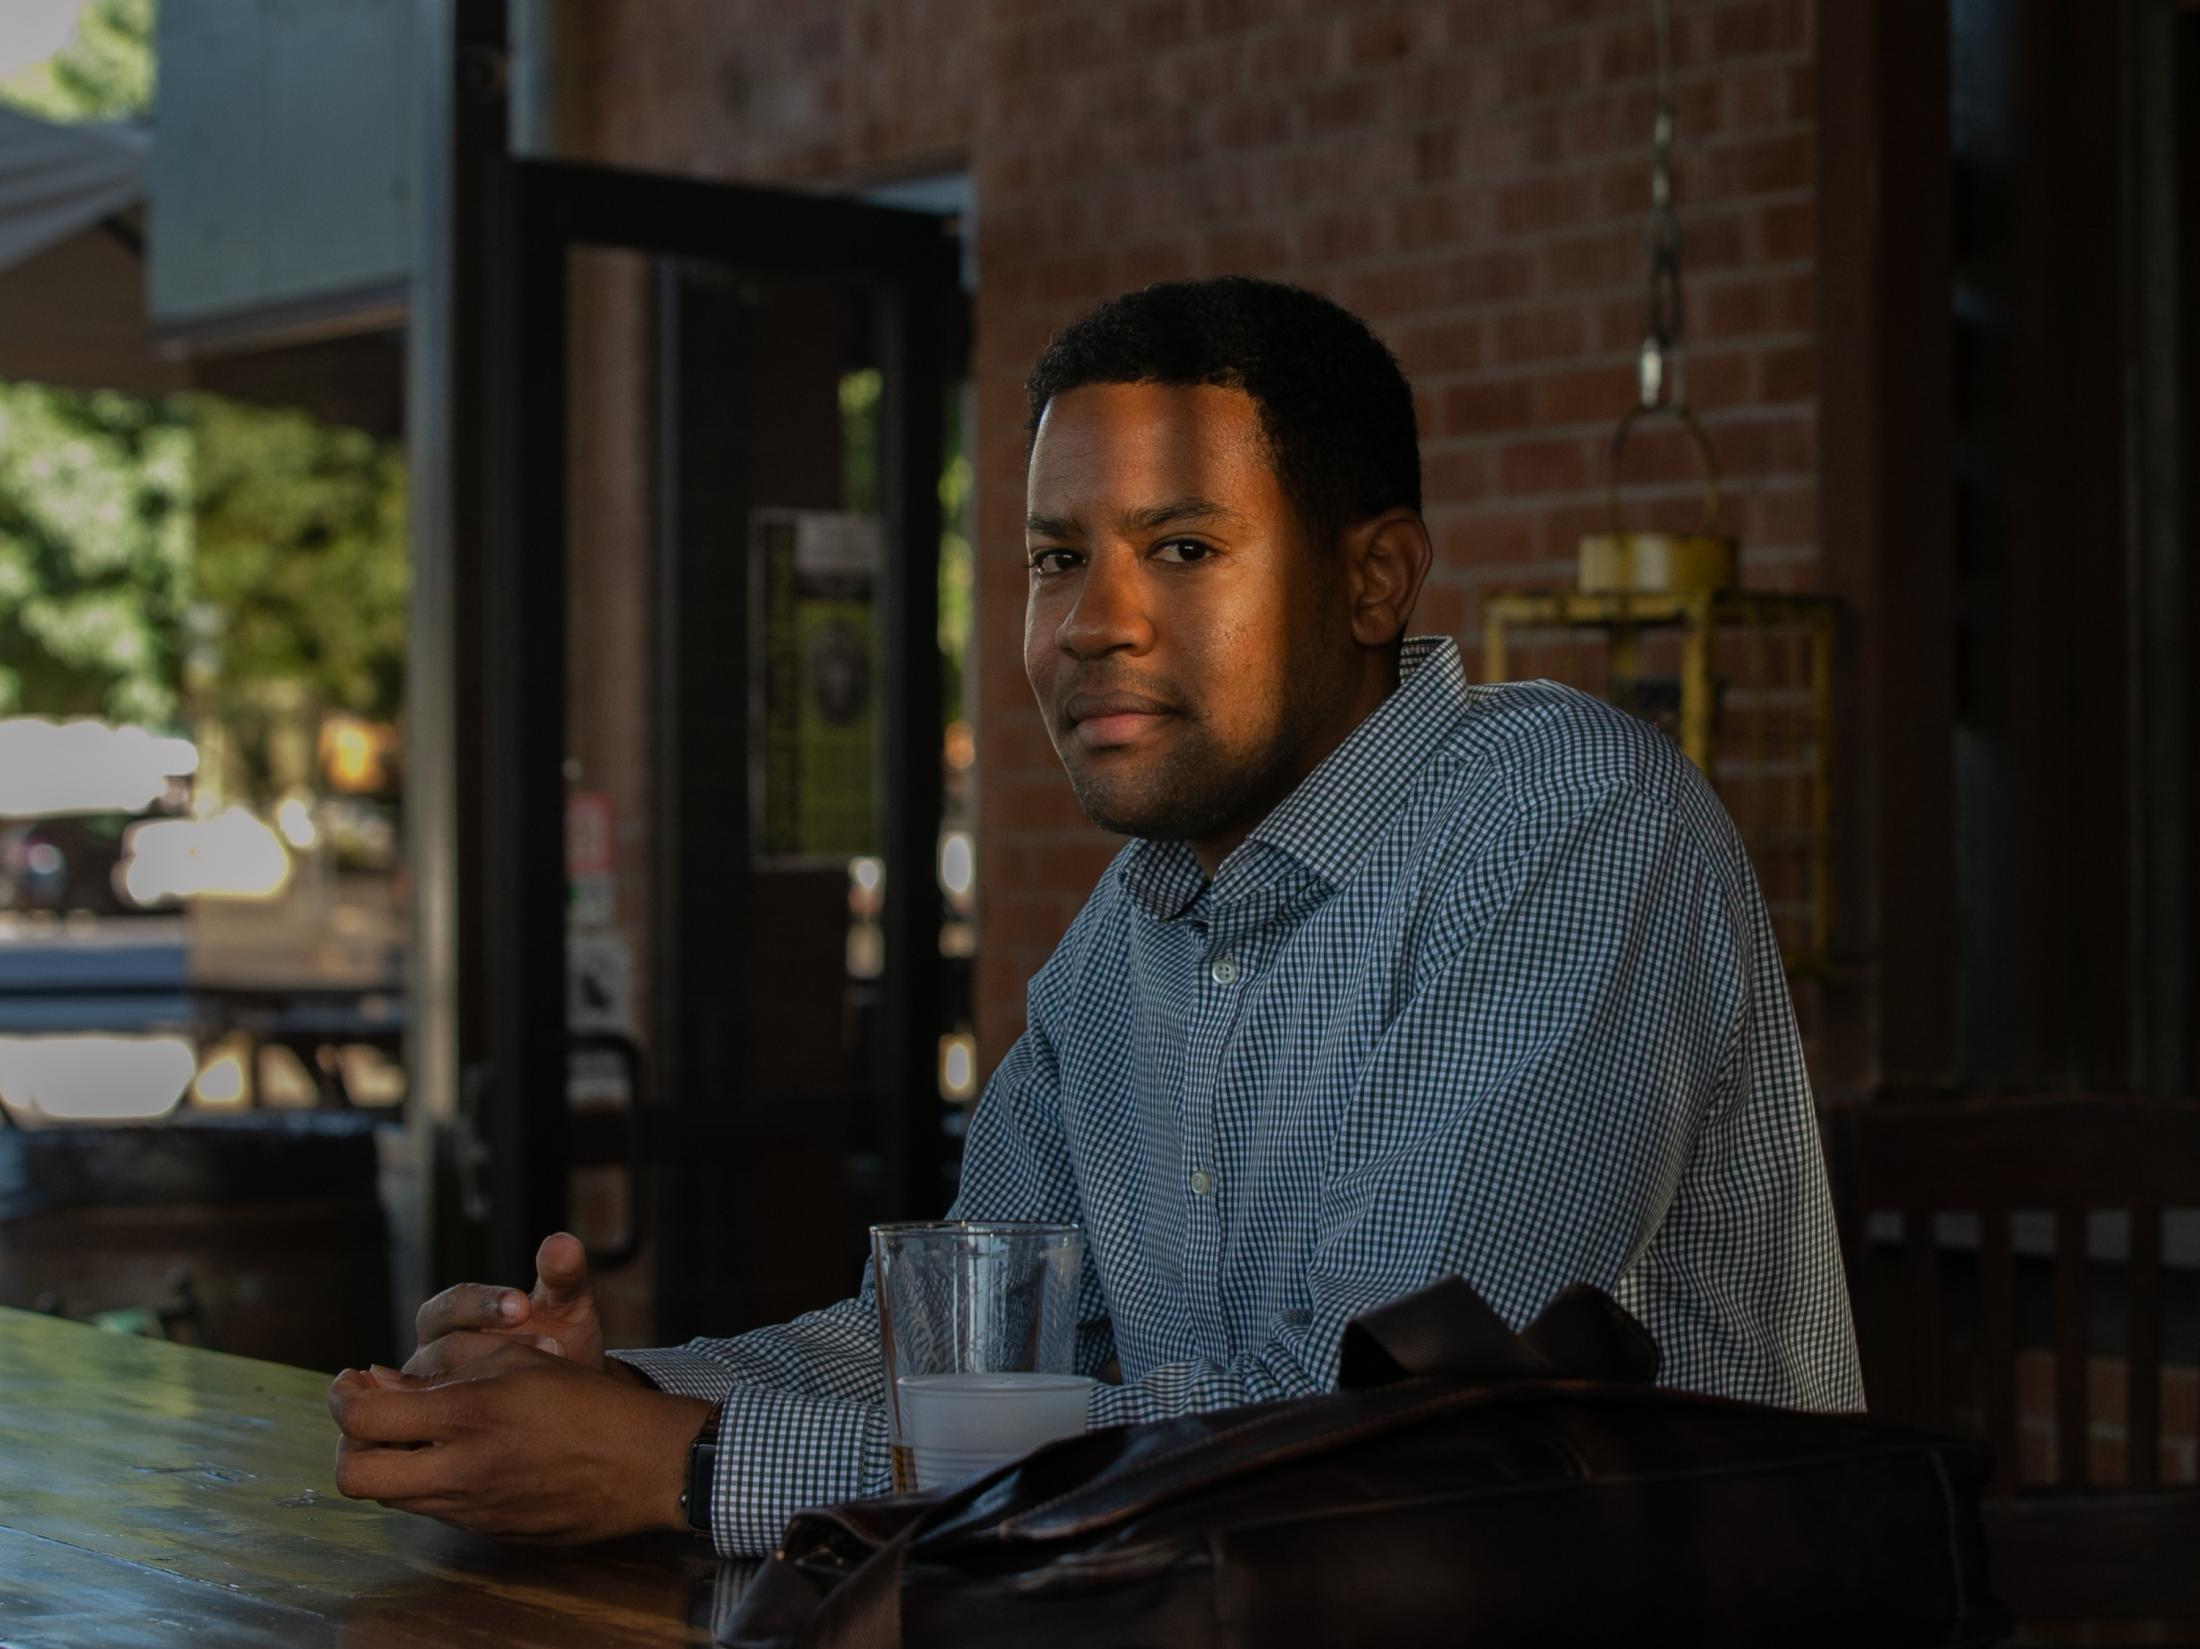 Downtown Phoenix resident Omar Peters enjoys a beer after work at The Grand Cafe in Phoenix.